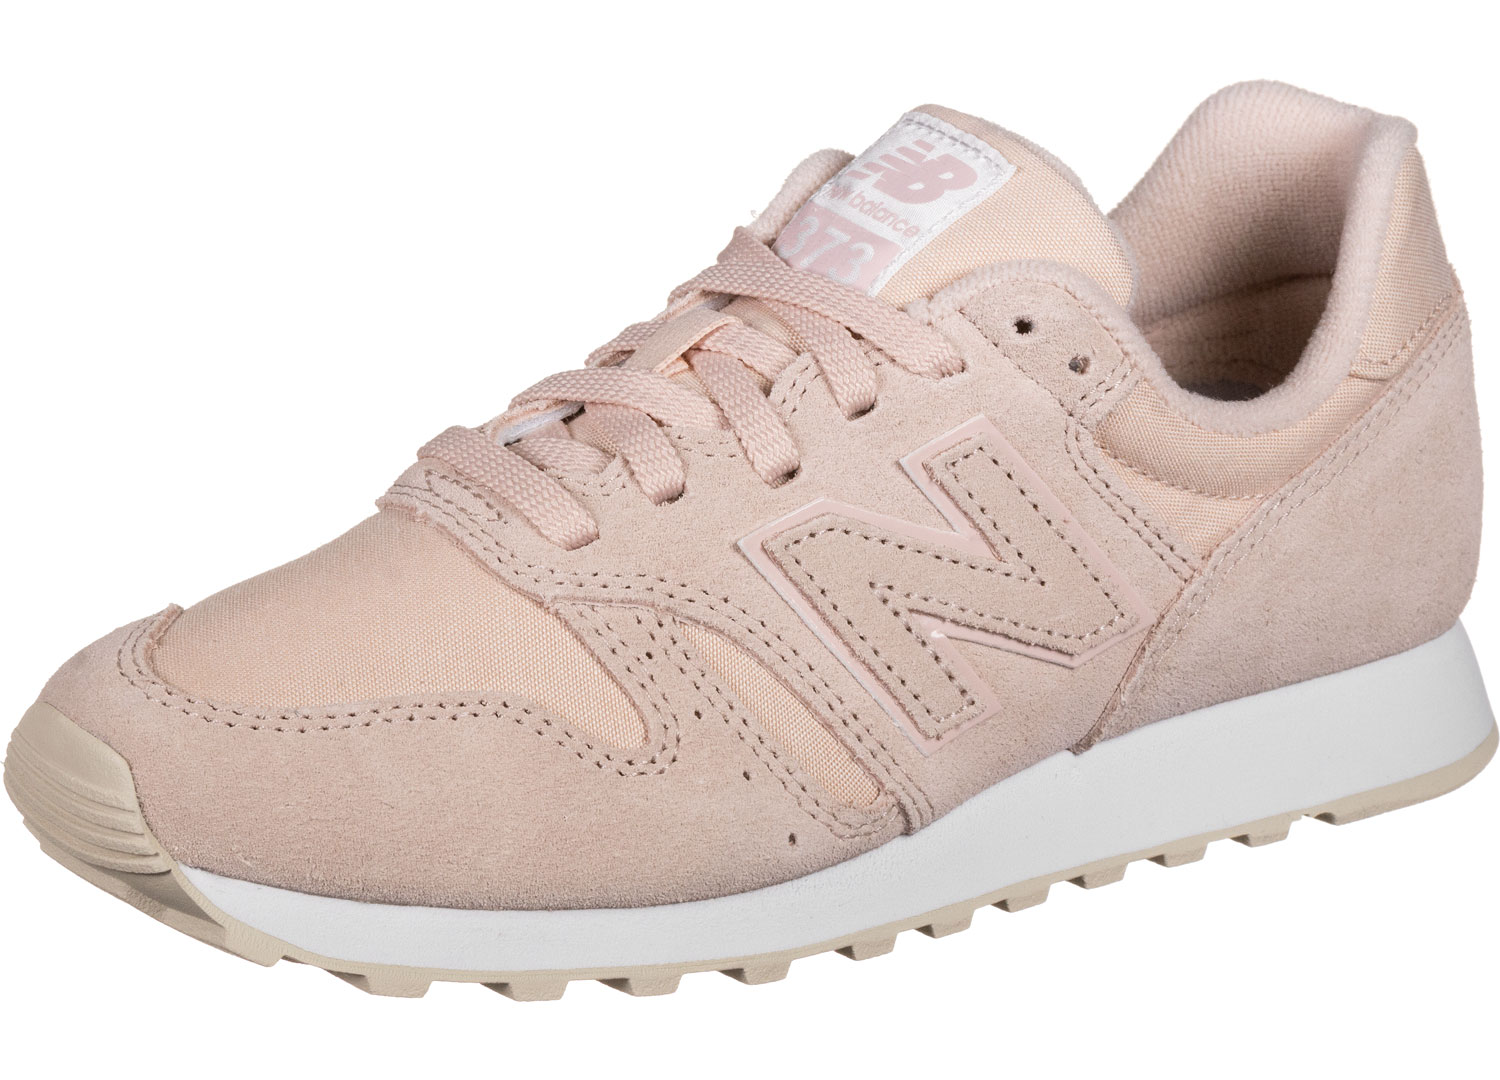 New Balance WL373 W - Sneakers Low at